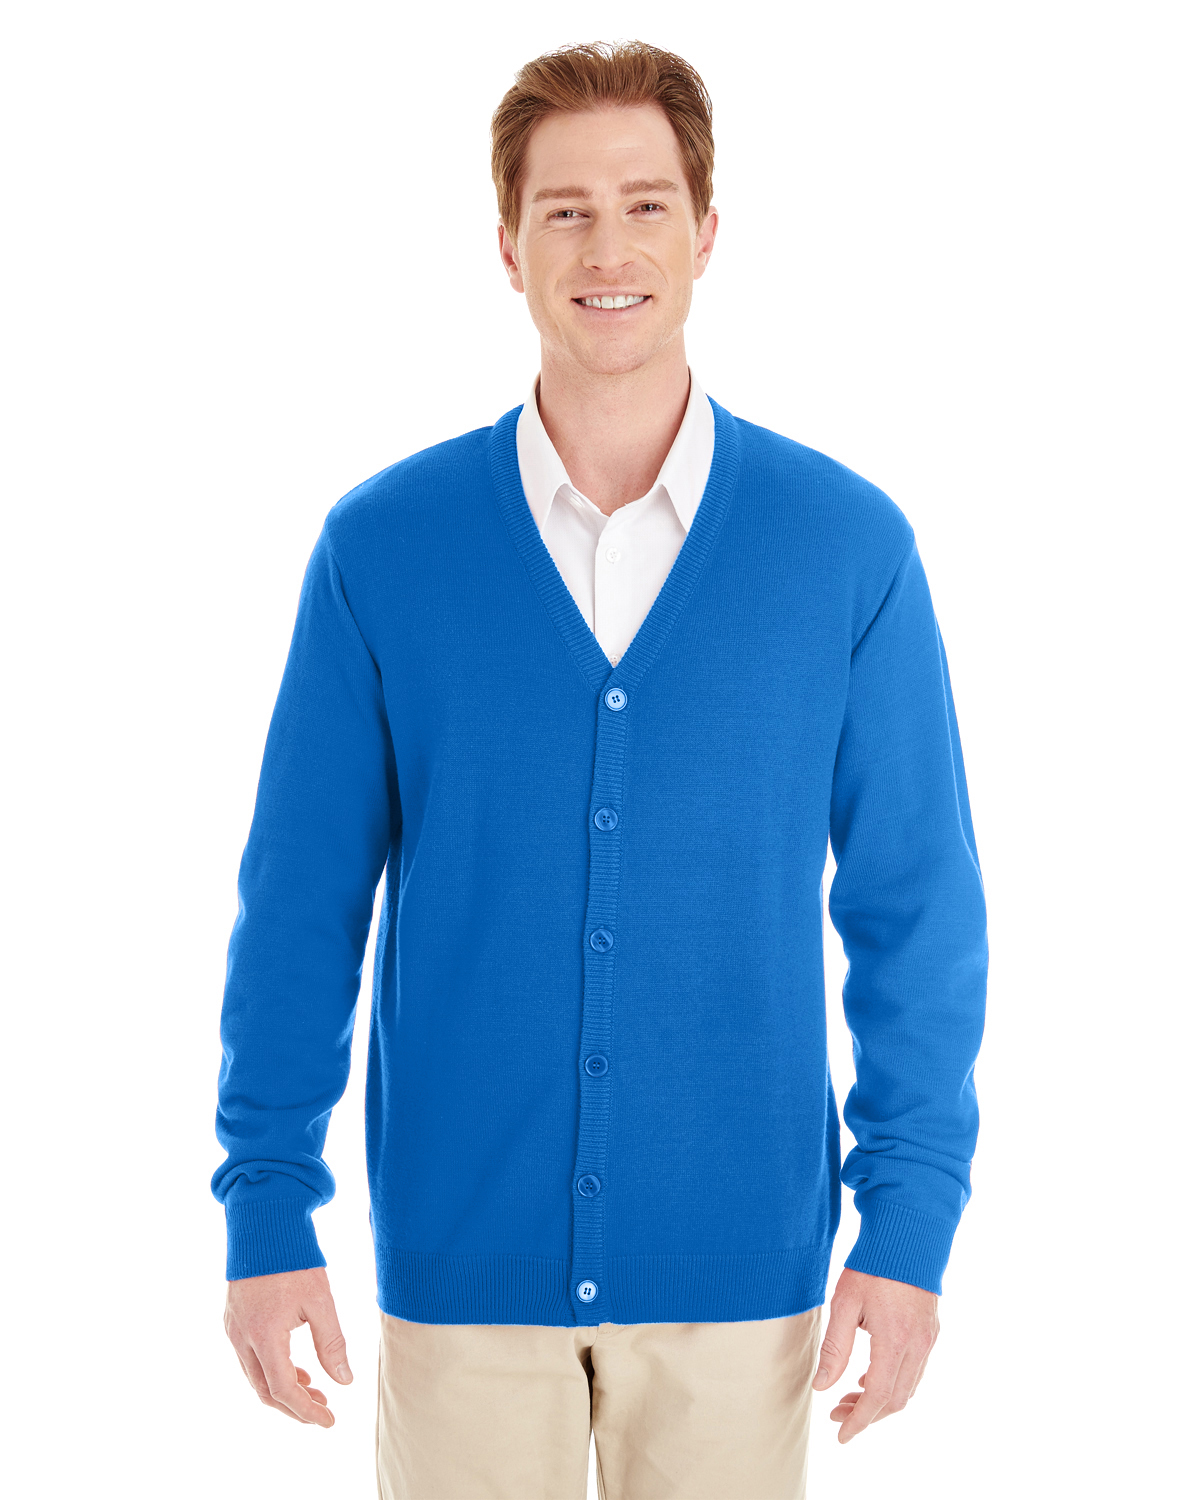 Harriton - M425 Men's Pilbloc V-Neck Button Cardigan Sweater, Pensacola, Embroidery, Screen Printing, Logo Masters International